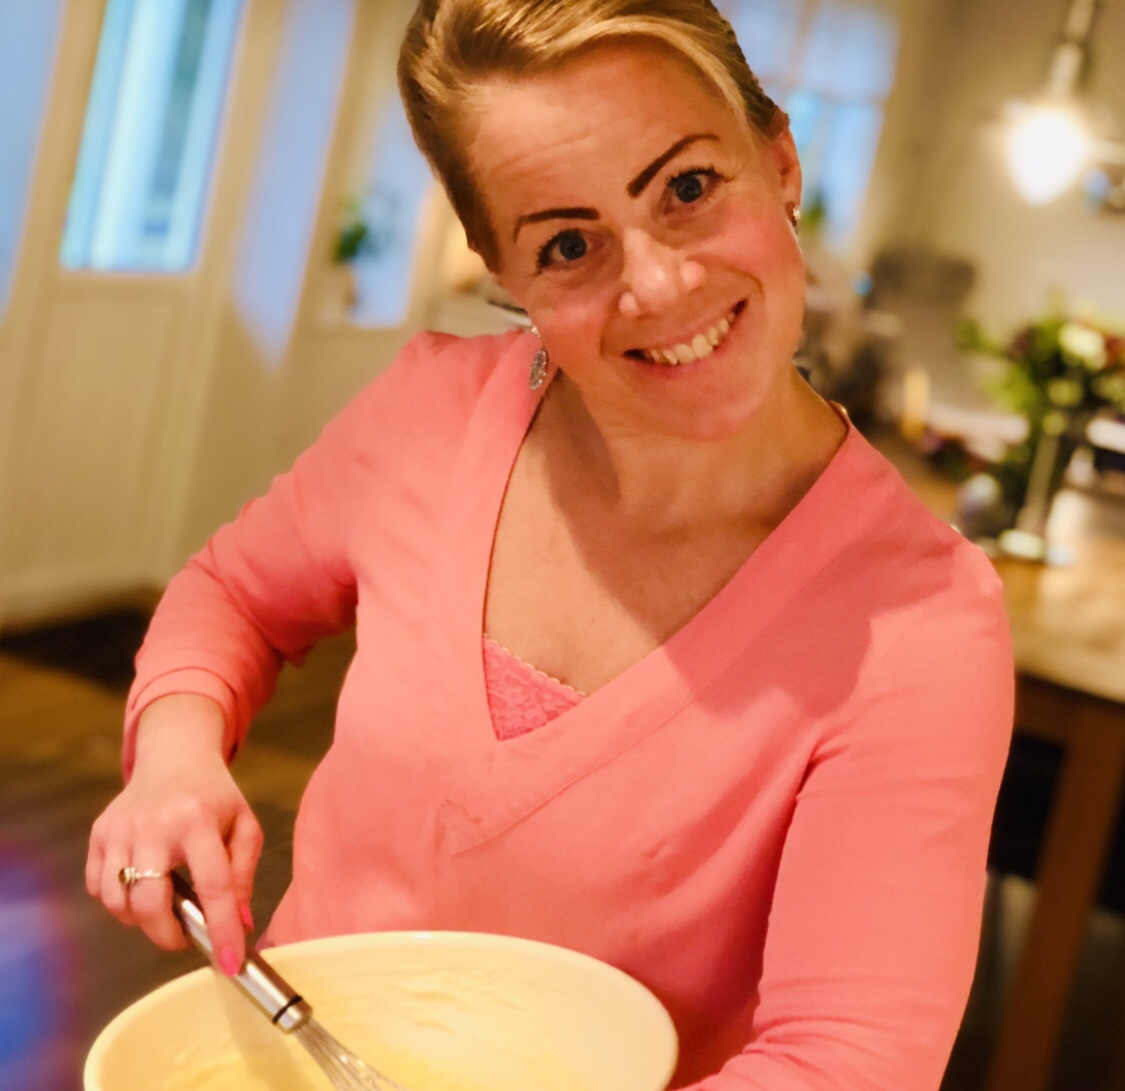 Kitchenstoriesbykarin på Instagram